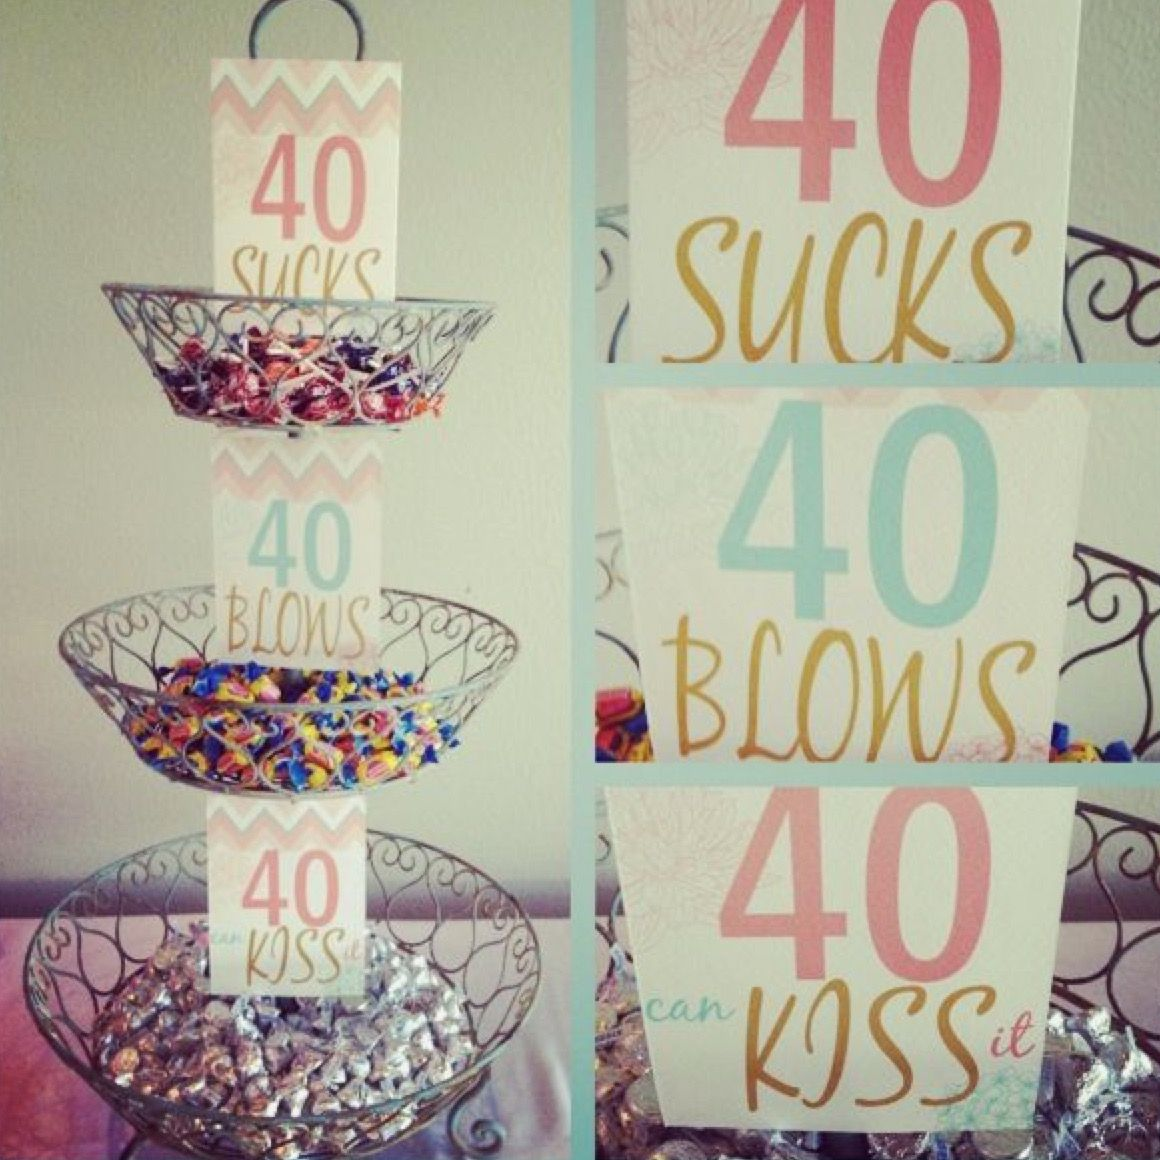 40th bday ideas image by Jen Hough on Fun party 40th